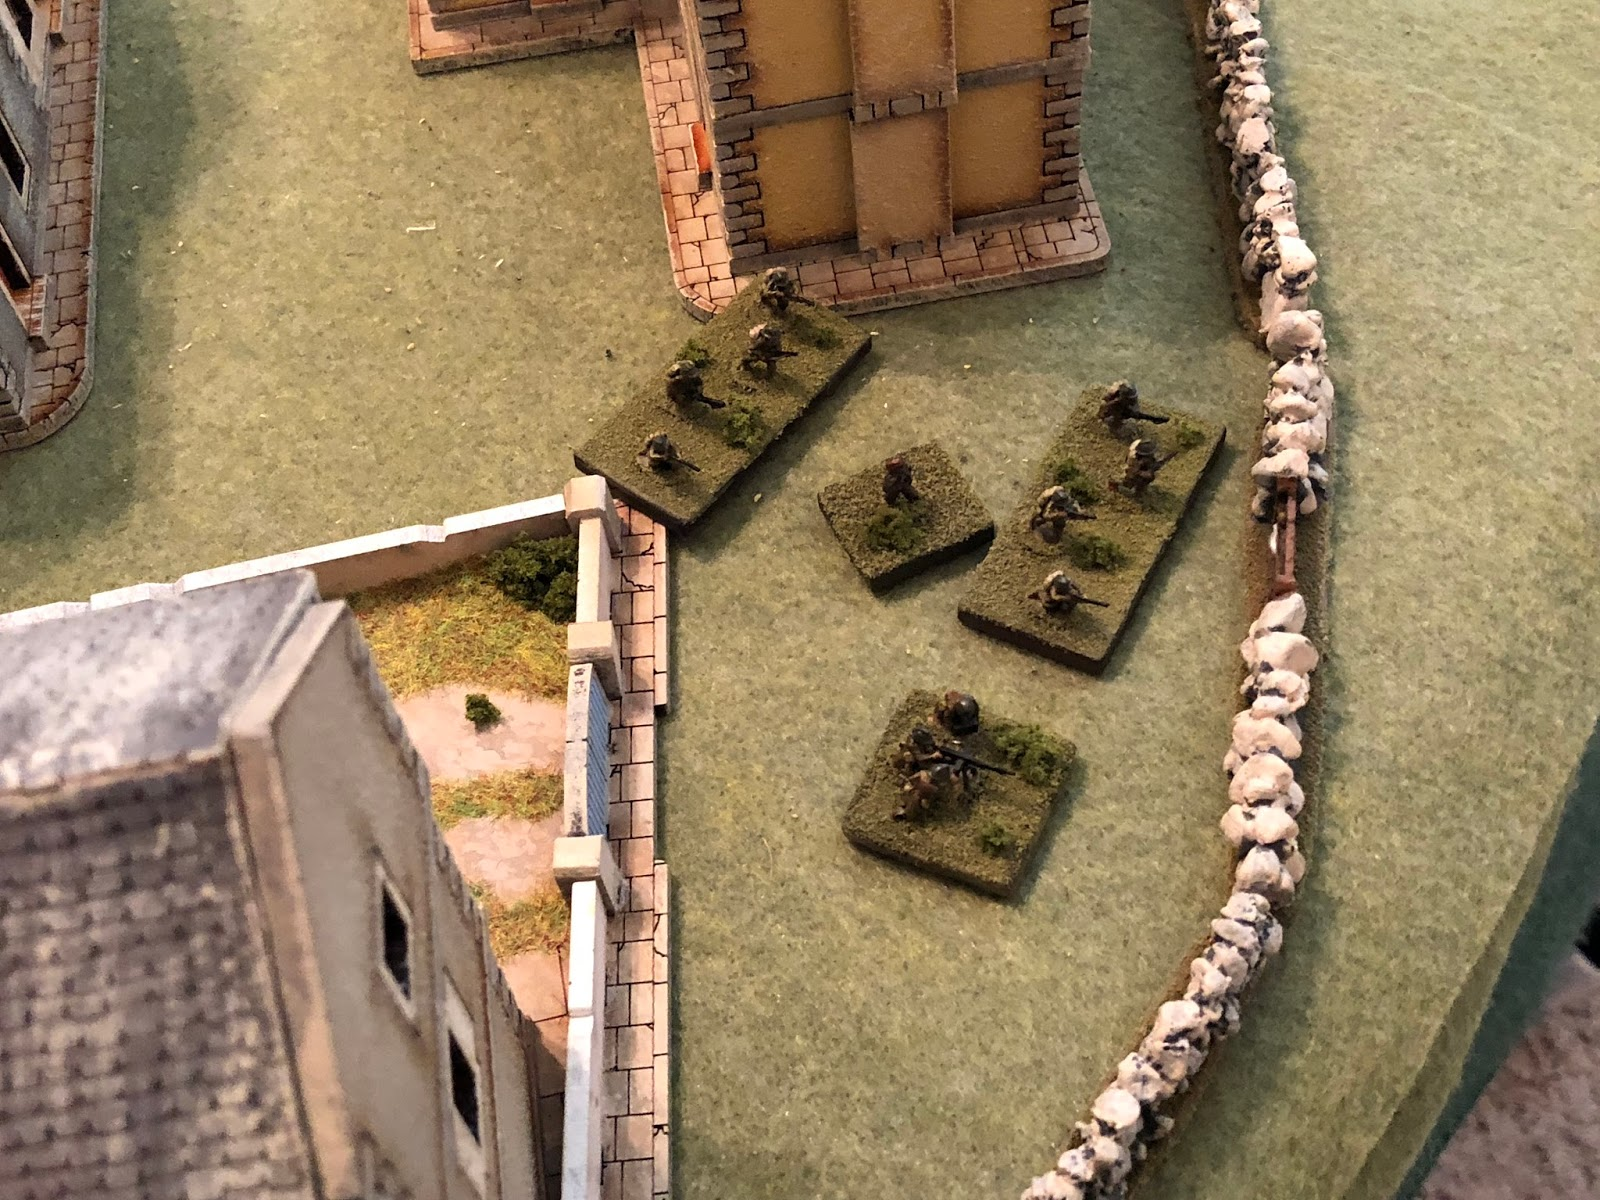 While the French anti-tank gunners spiked their gun and fell back, joining the machine gun team and last remaining squads from 1st and 2nd Platoons.